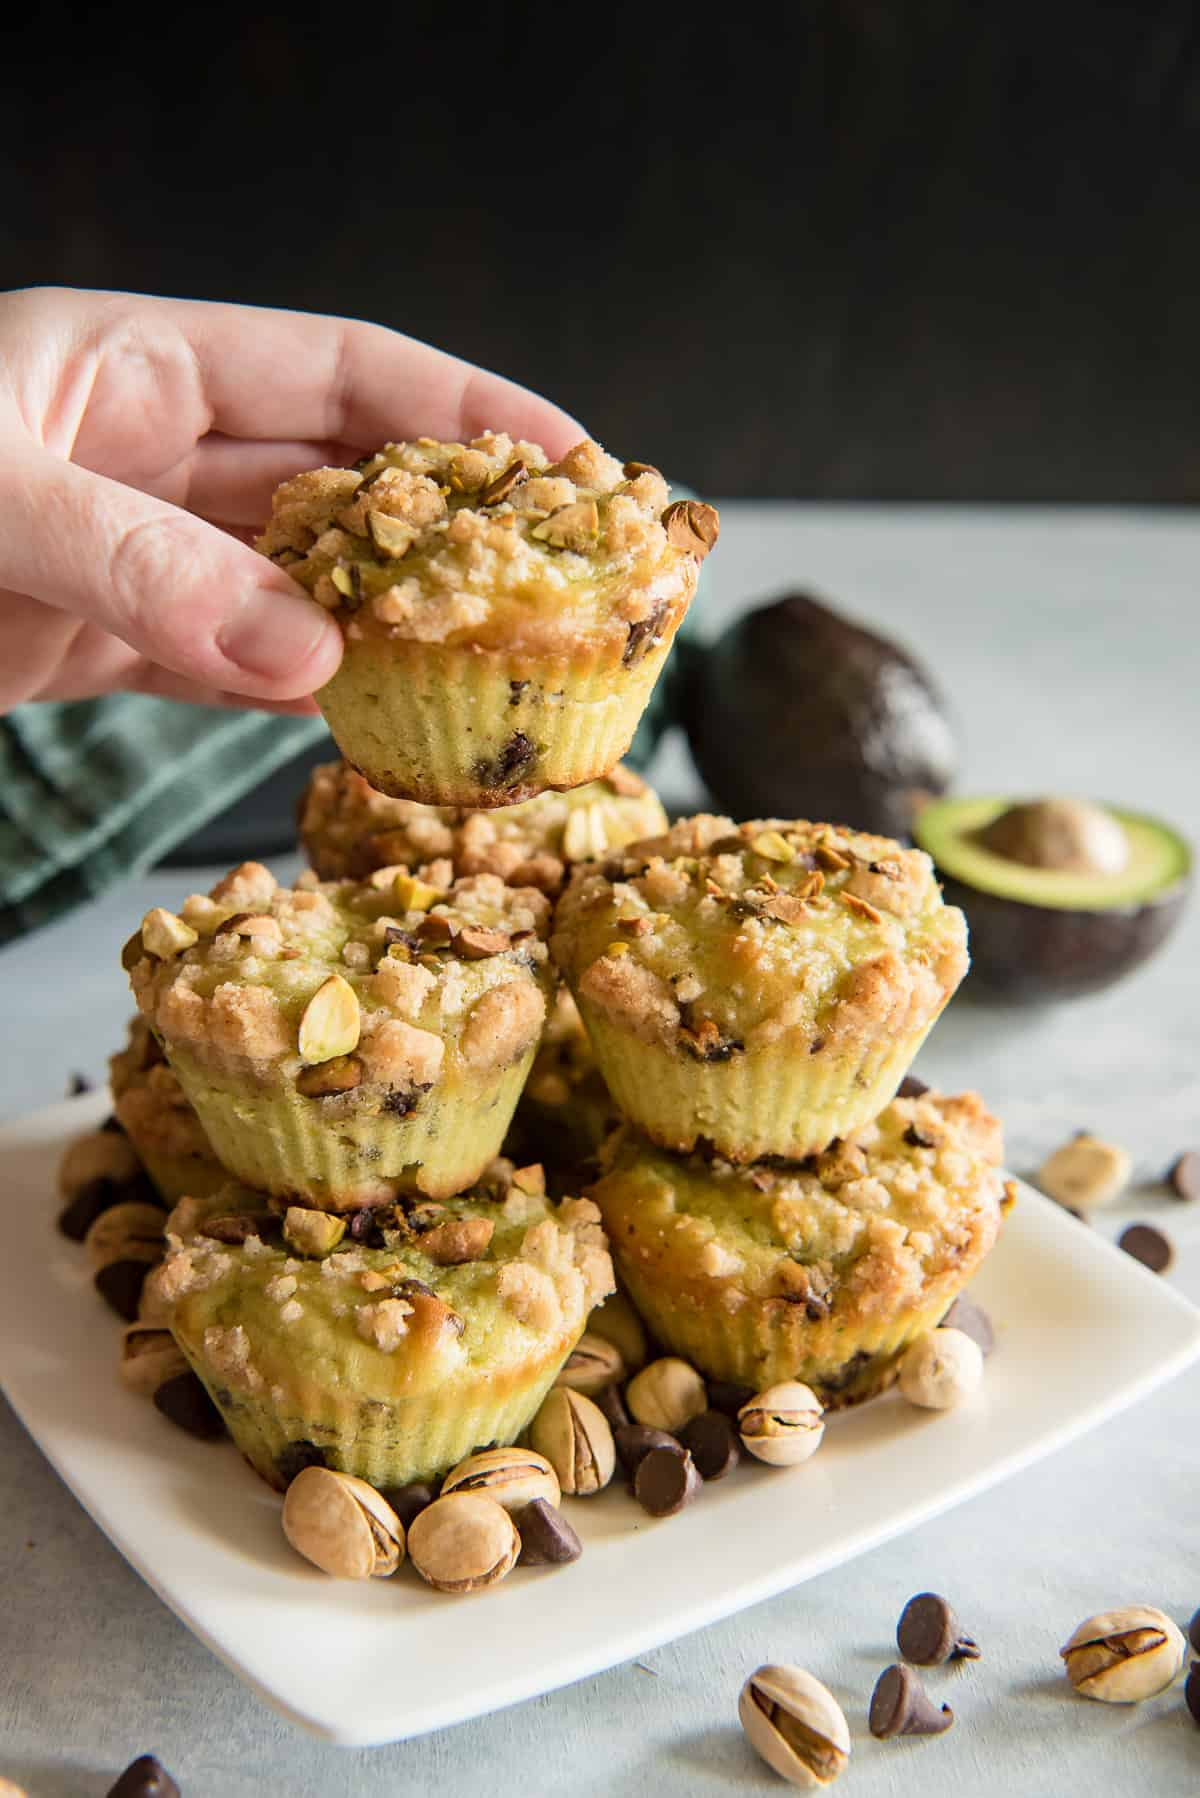 Avocado Chocolate Chip Muffins with Pistachio Crunch